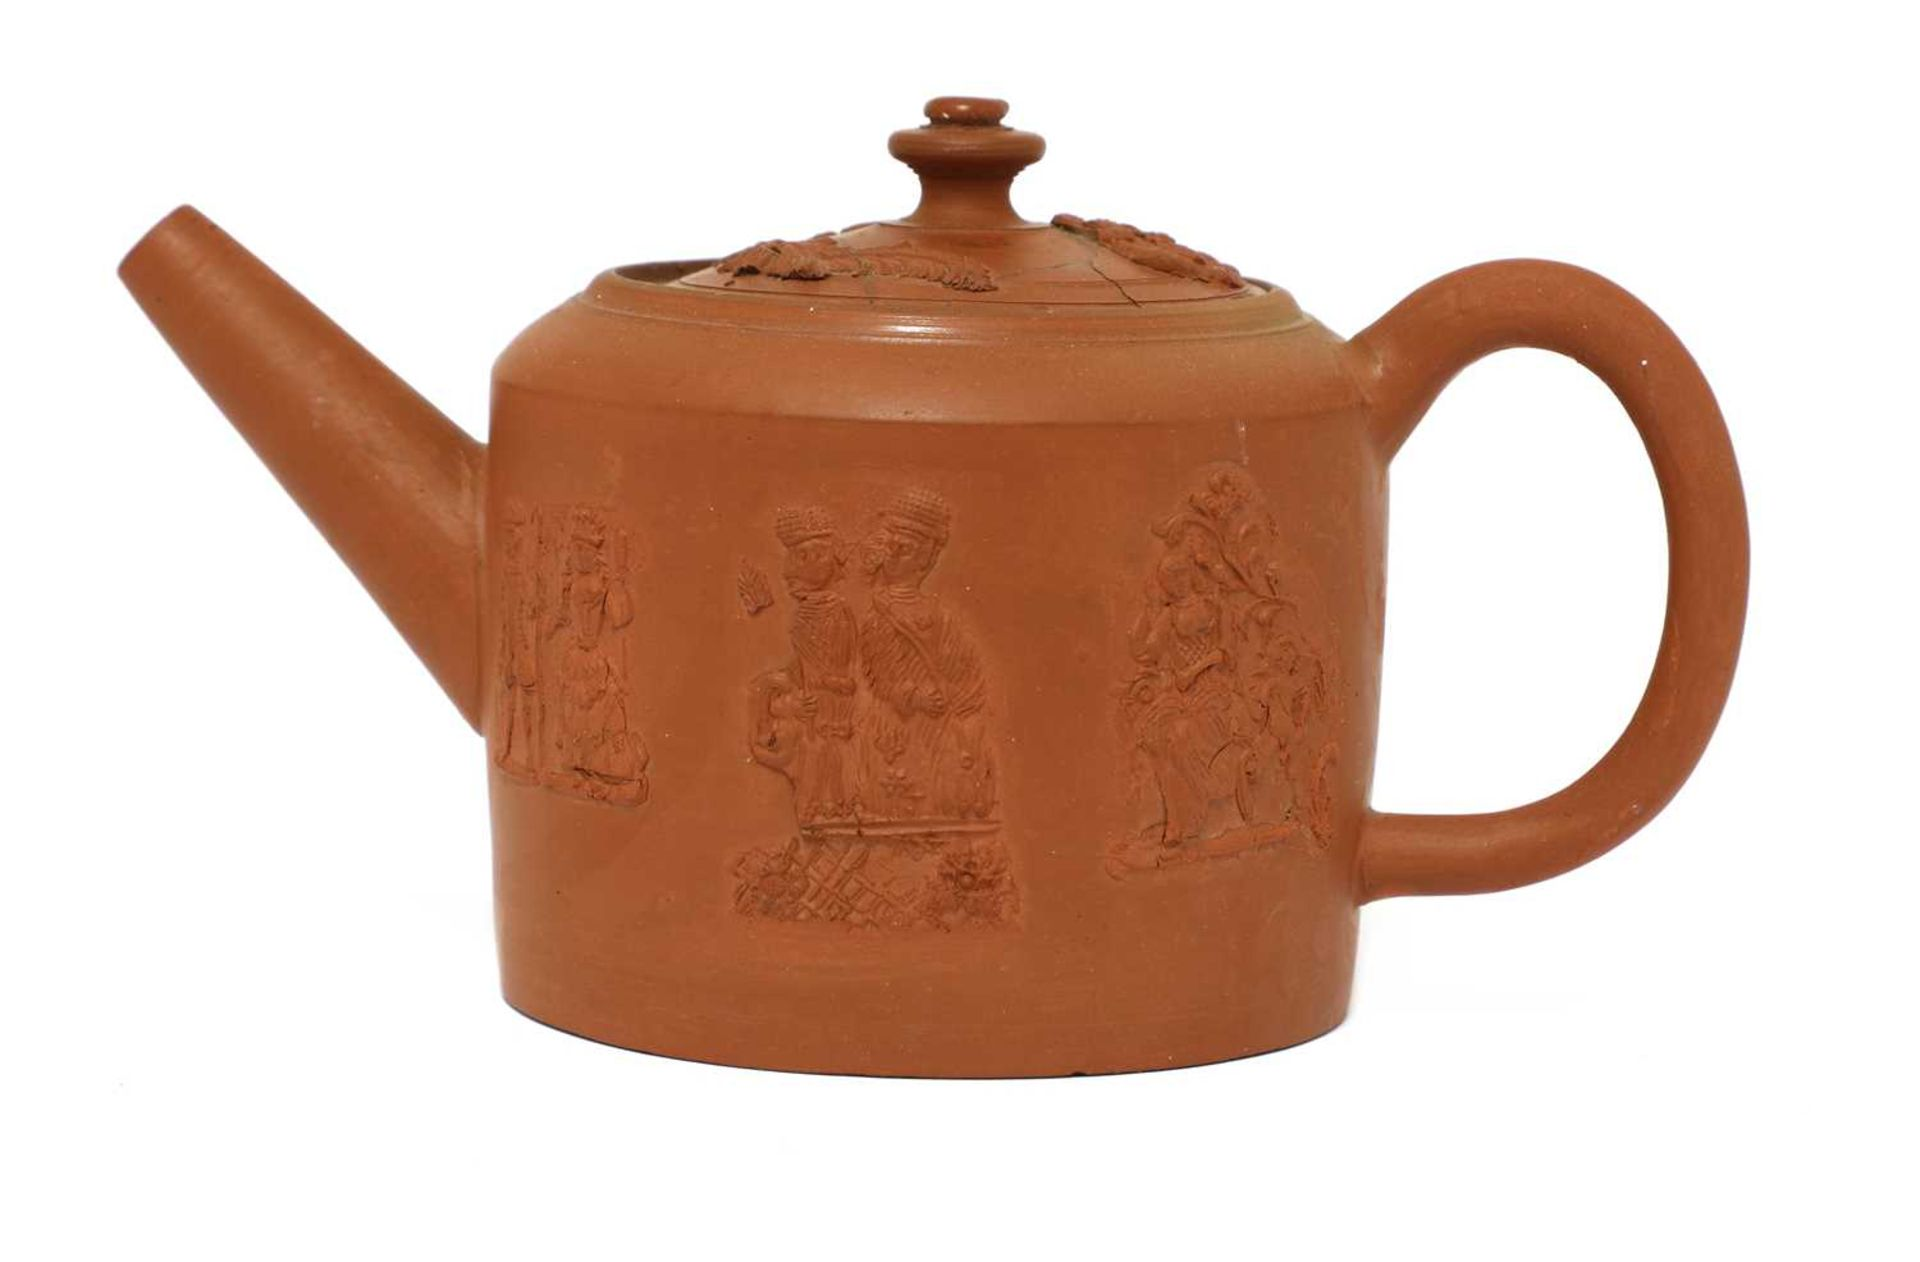 A Staffordshire redware small cylindrical teapot and cover, - Image 3 of 4